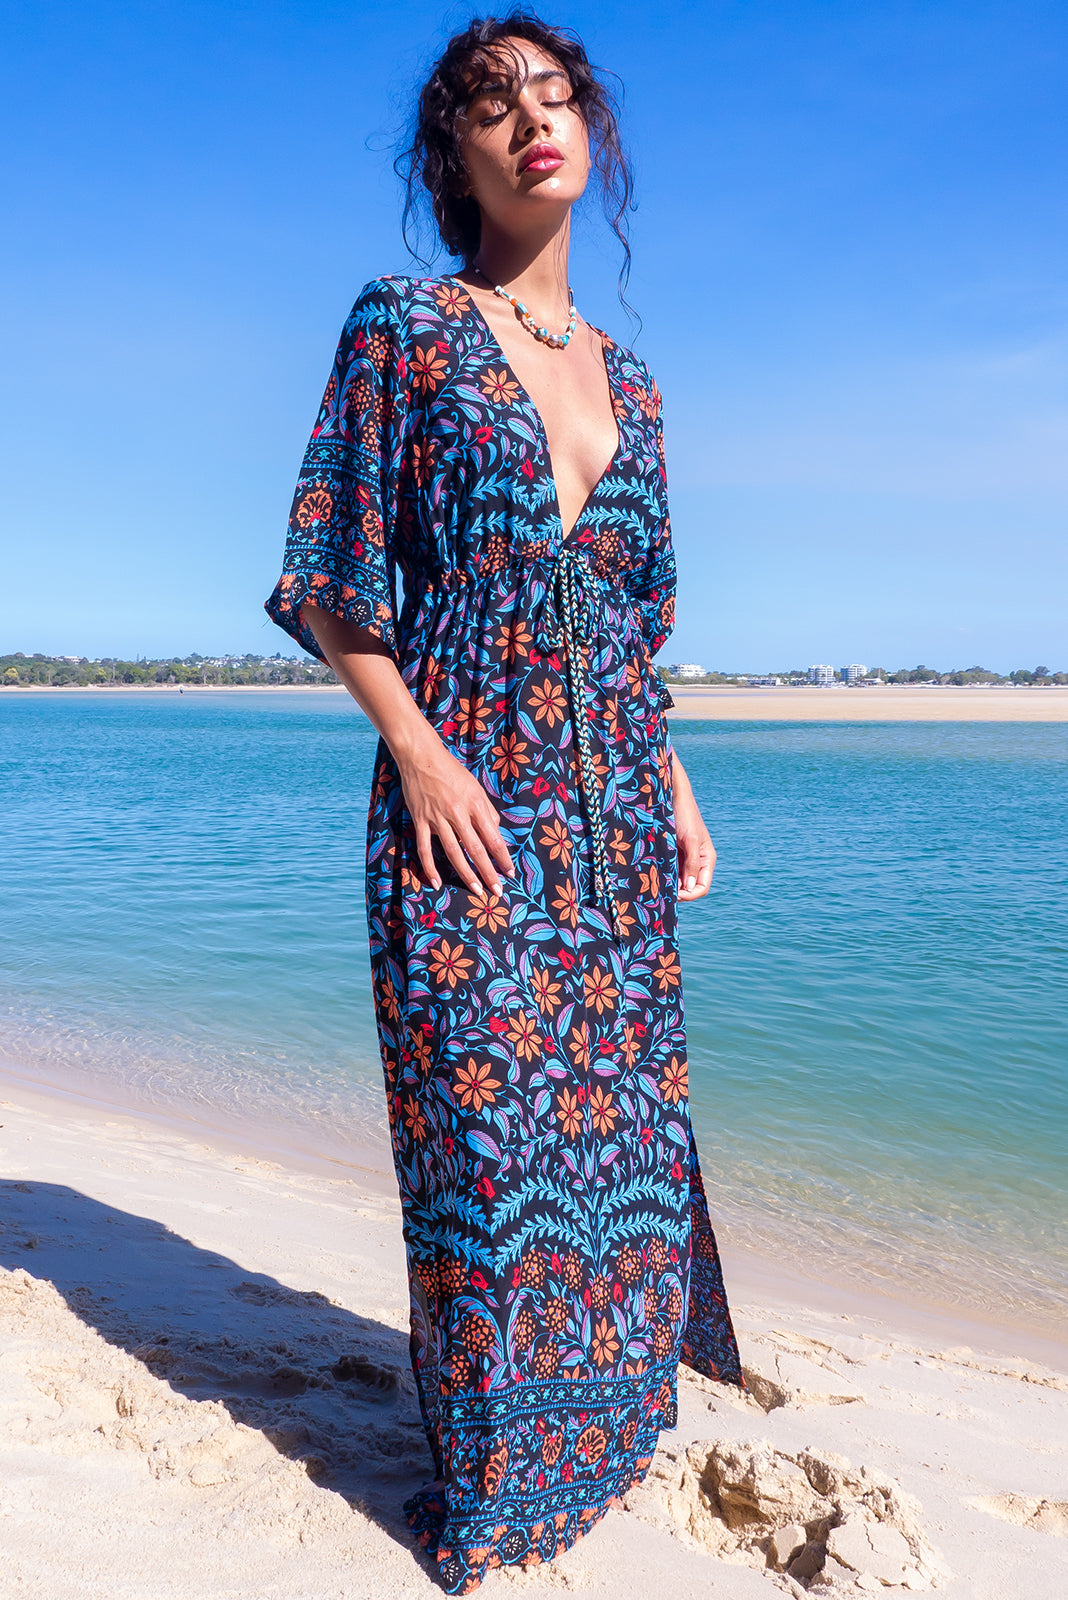 The Annabella Noir Nuit Caftan Maxi Dress features deep V-neckline, side pockets, front drawstring waist, elasticated waist back, braided multicoloured drawstring with tassels and beading and 100% rayon in ink base with floral motif and border feature.